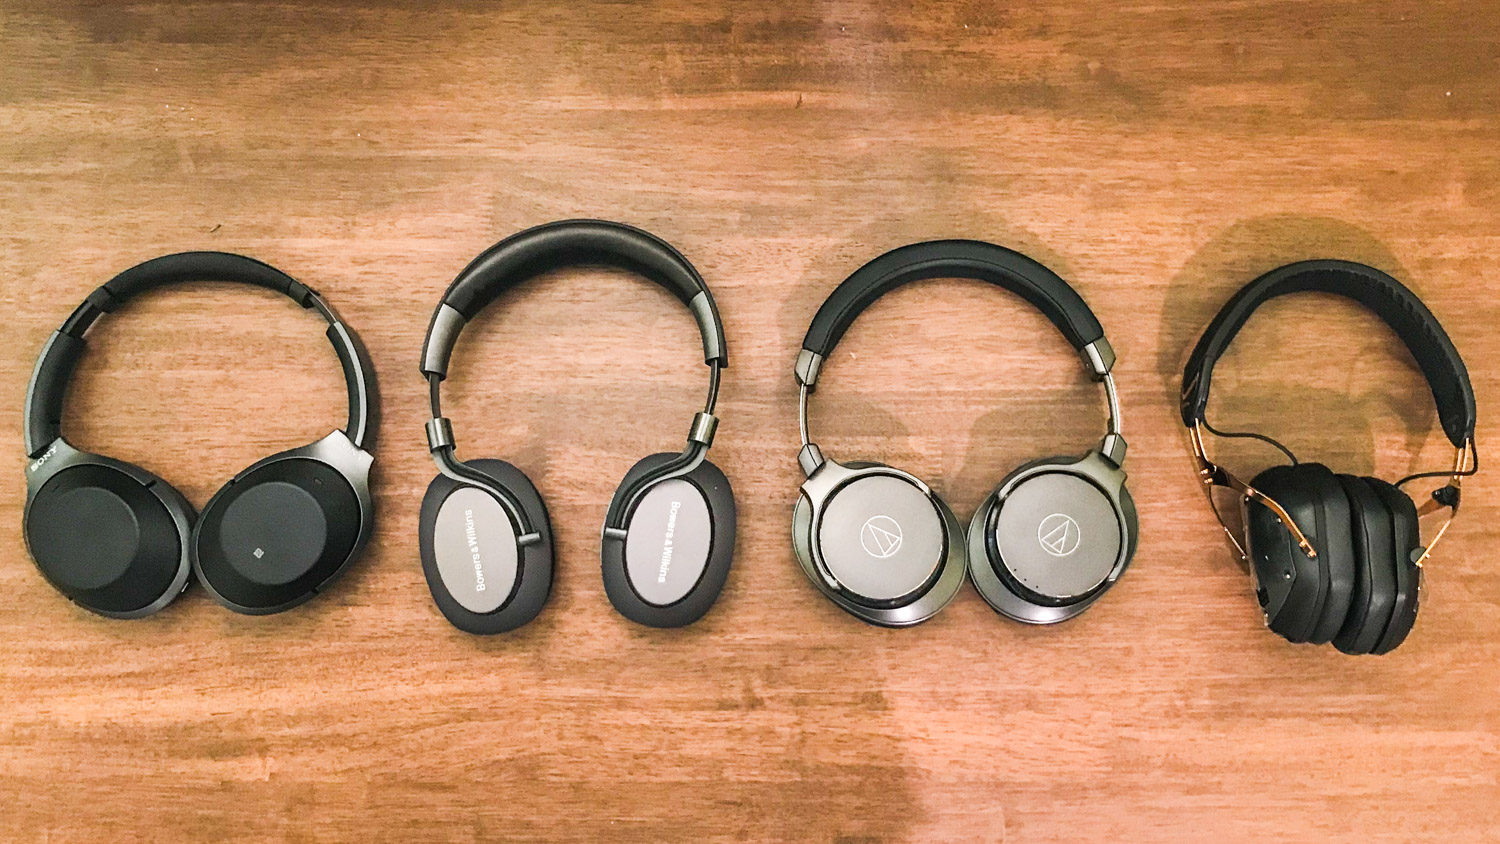 9f019b958d2 I am once again in the market for Bluetooth headphones. My last pair, the  first edition Sony MDR-1RBT, served me very well for the last four-and-a-half  ...